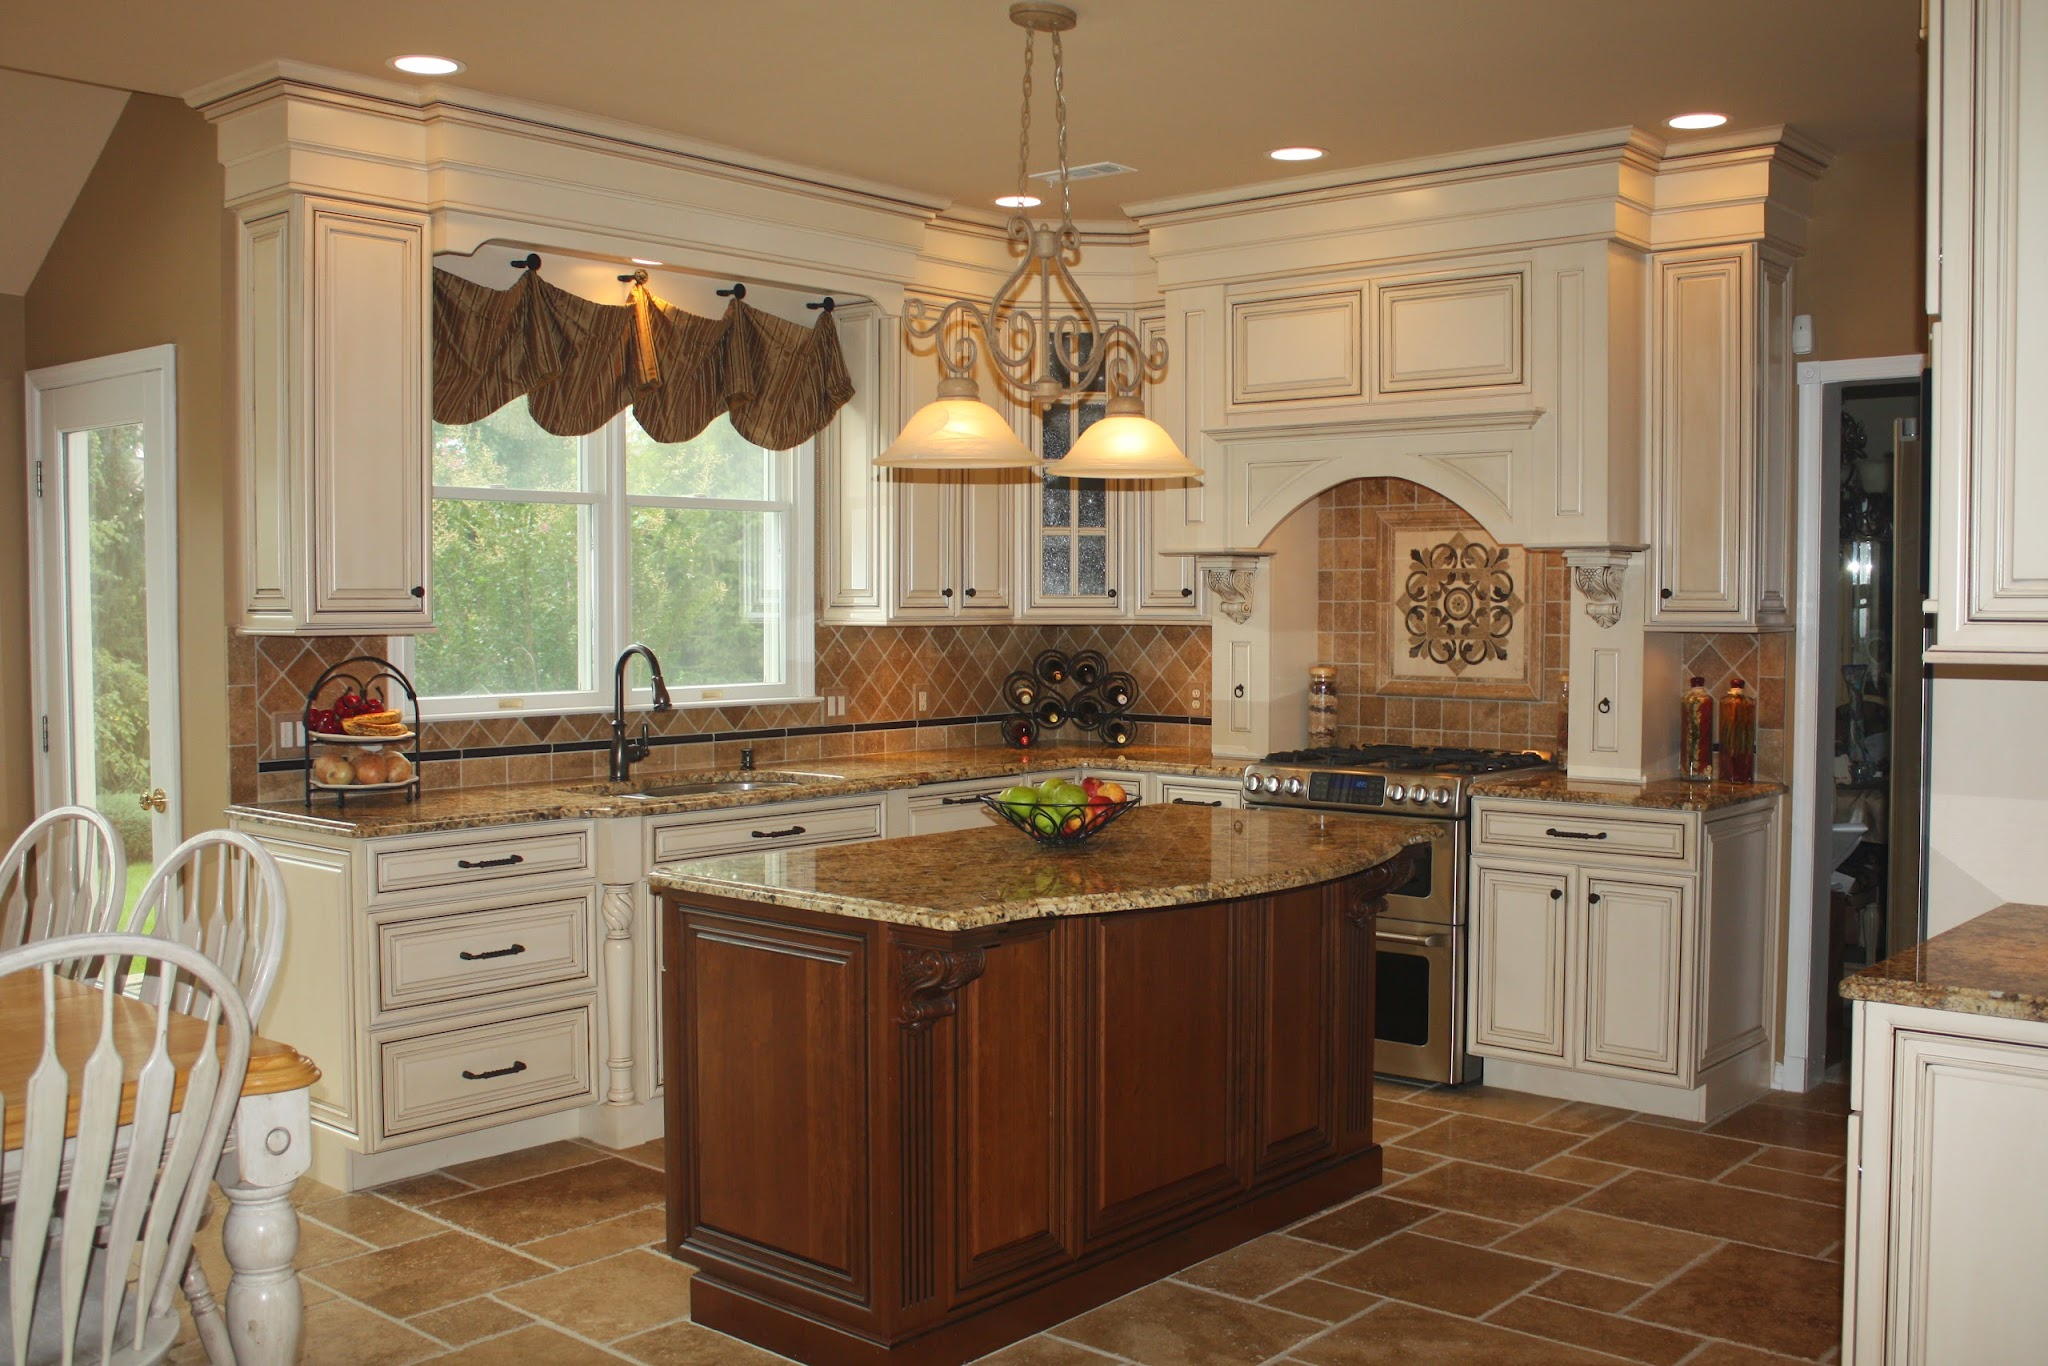 images of remodeled kitchens kitchen bar stools counter height houzz dreams house furniture